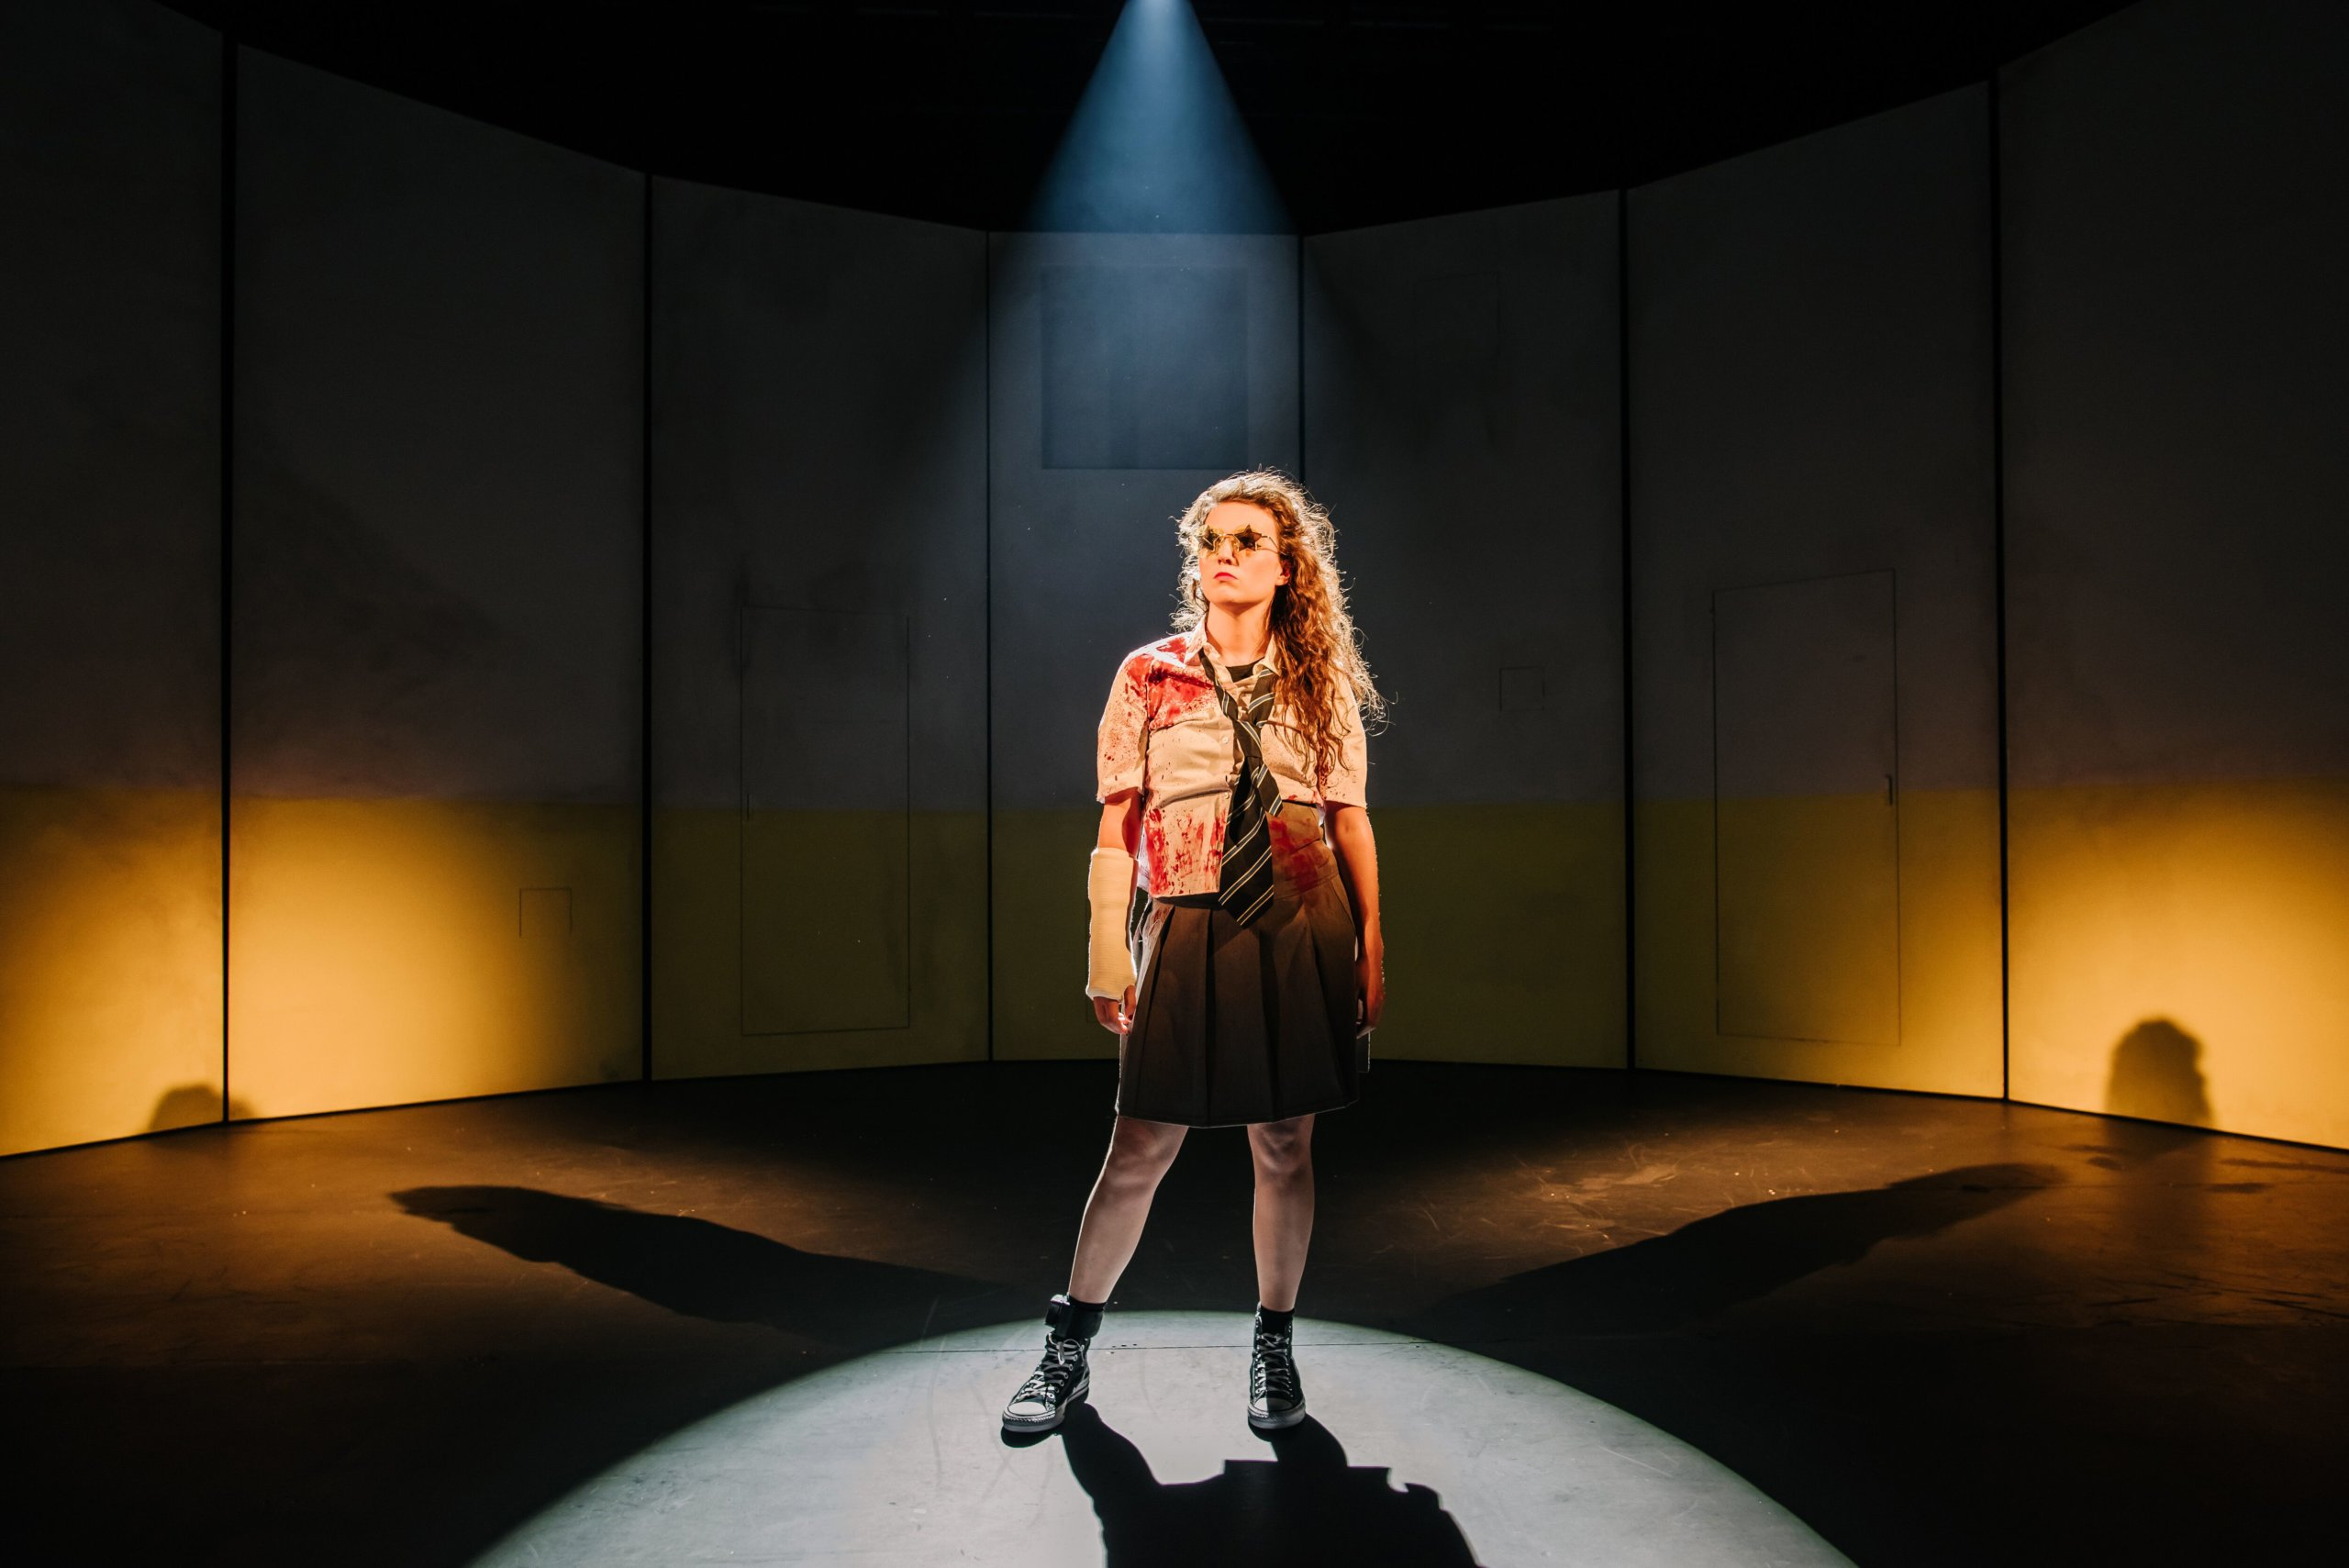 Anna Russell-Martin wears sunglasses as she stands on stage in the National Theatre of Scotland's production of the play The Panopticon.